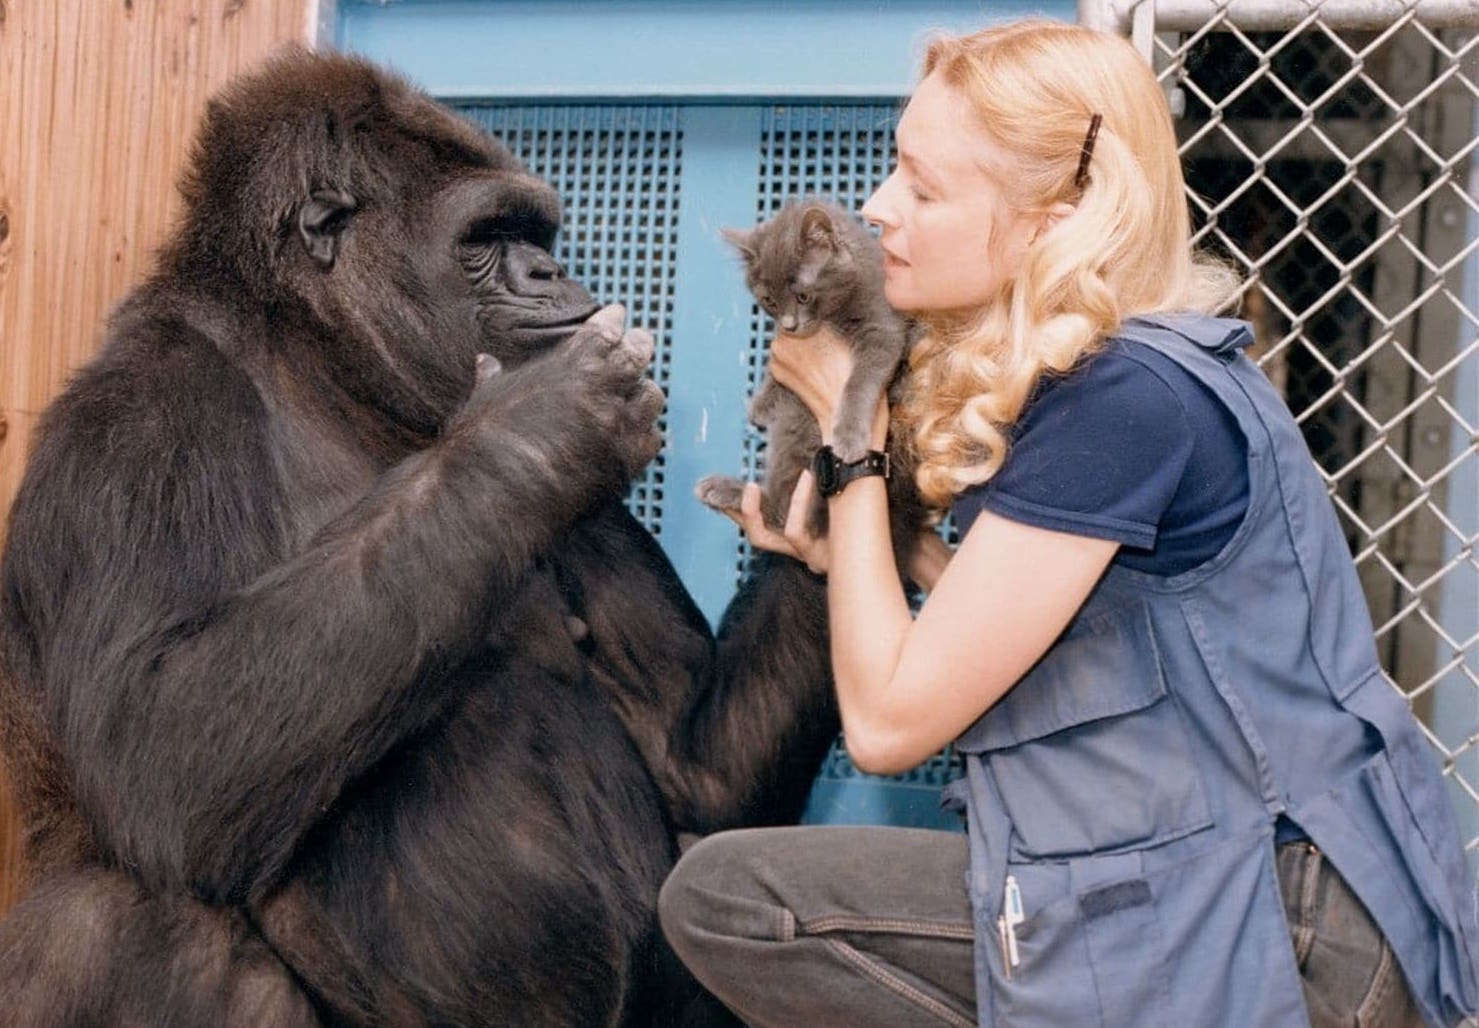 Not only did Koko know over 1,000 signs, but she also showed a broad range of emotions, previously only assumed to be held by humans.